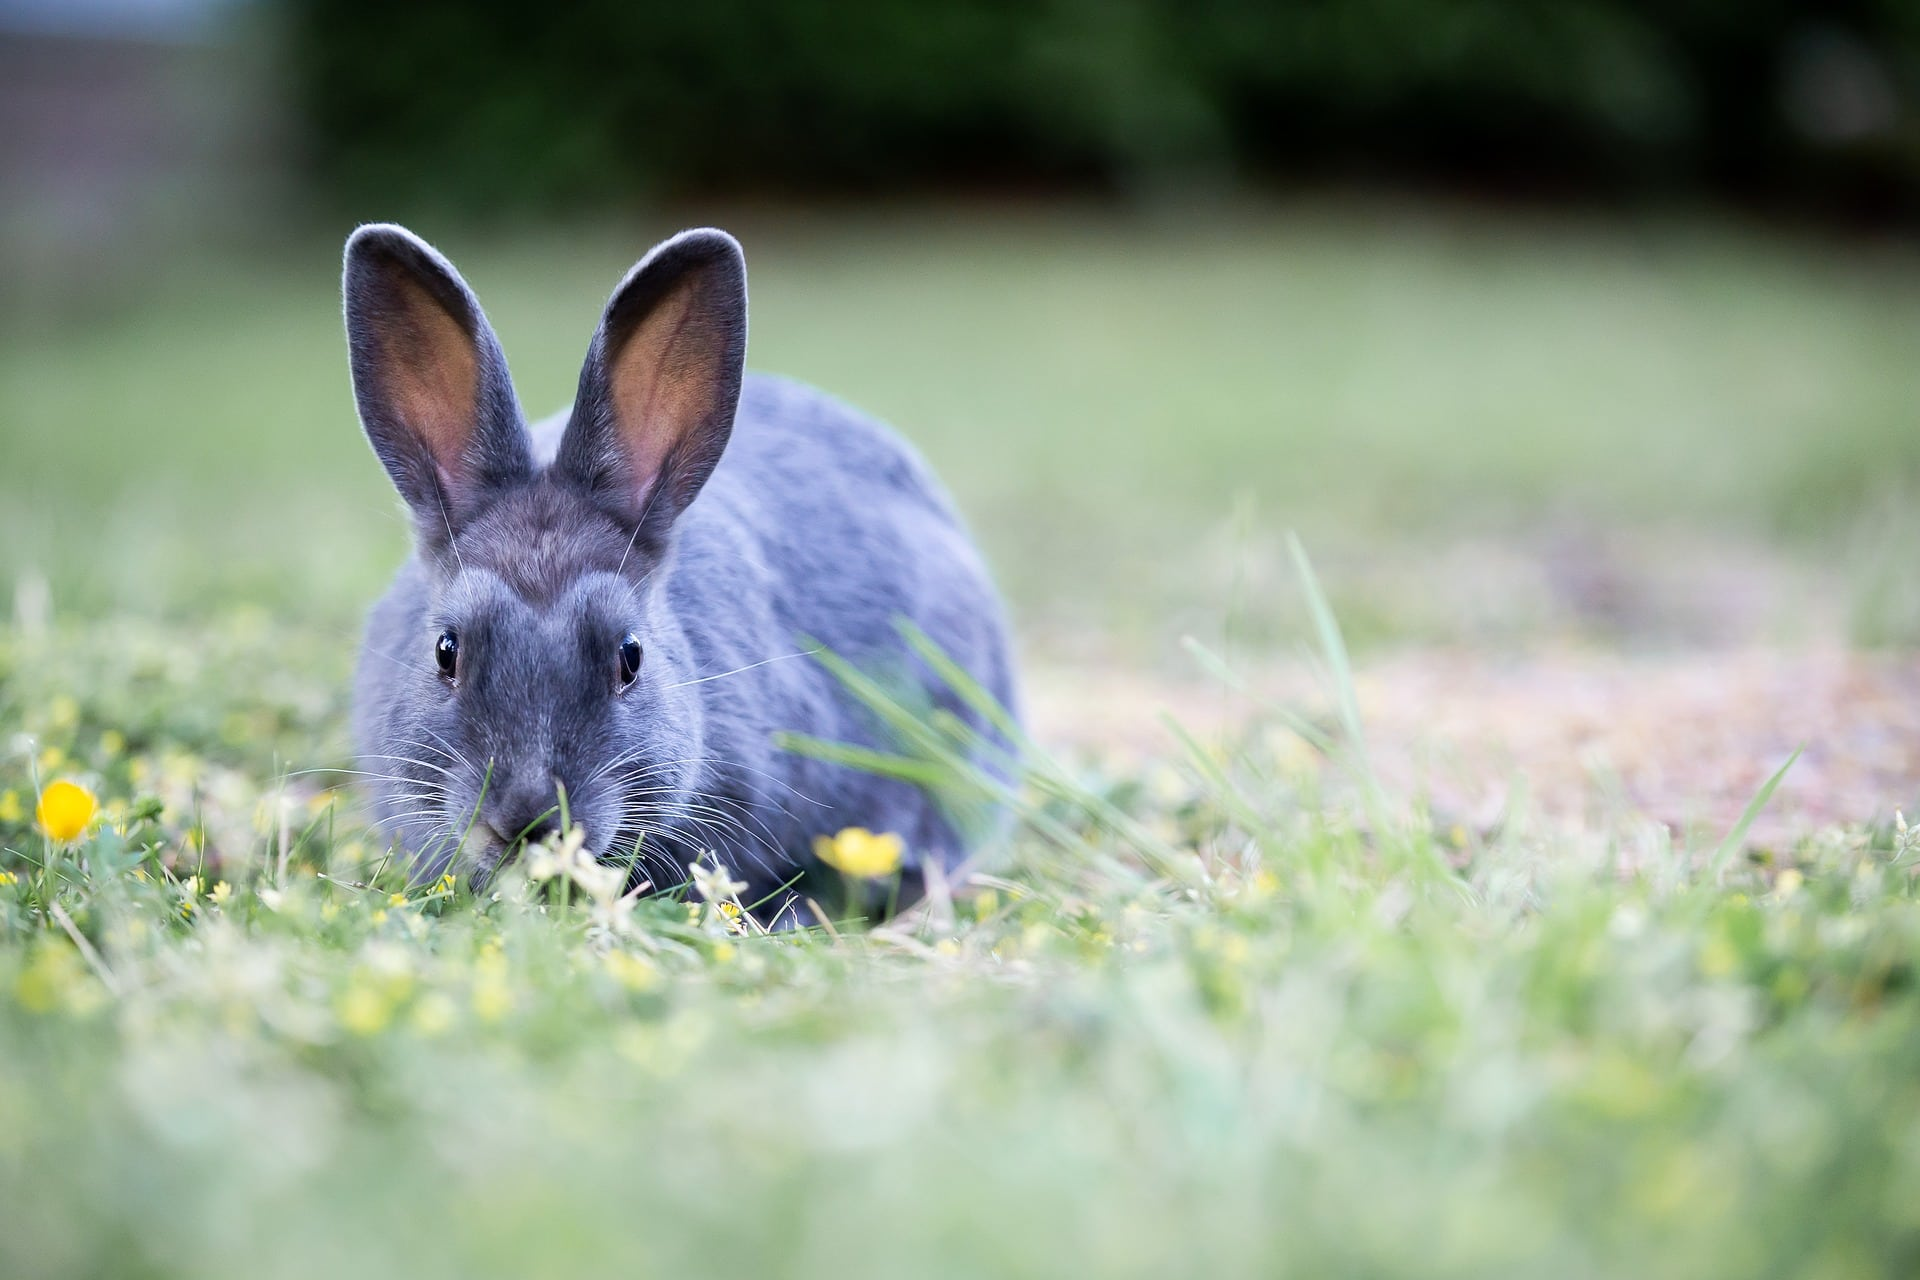 Body condition scoring your rabbit - The Healthy Pet Club